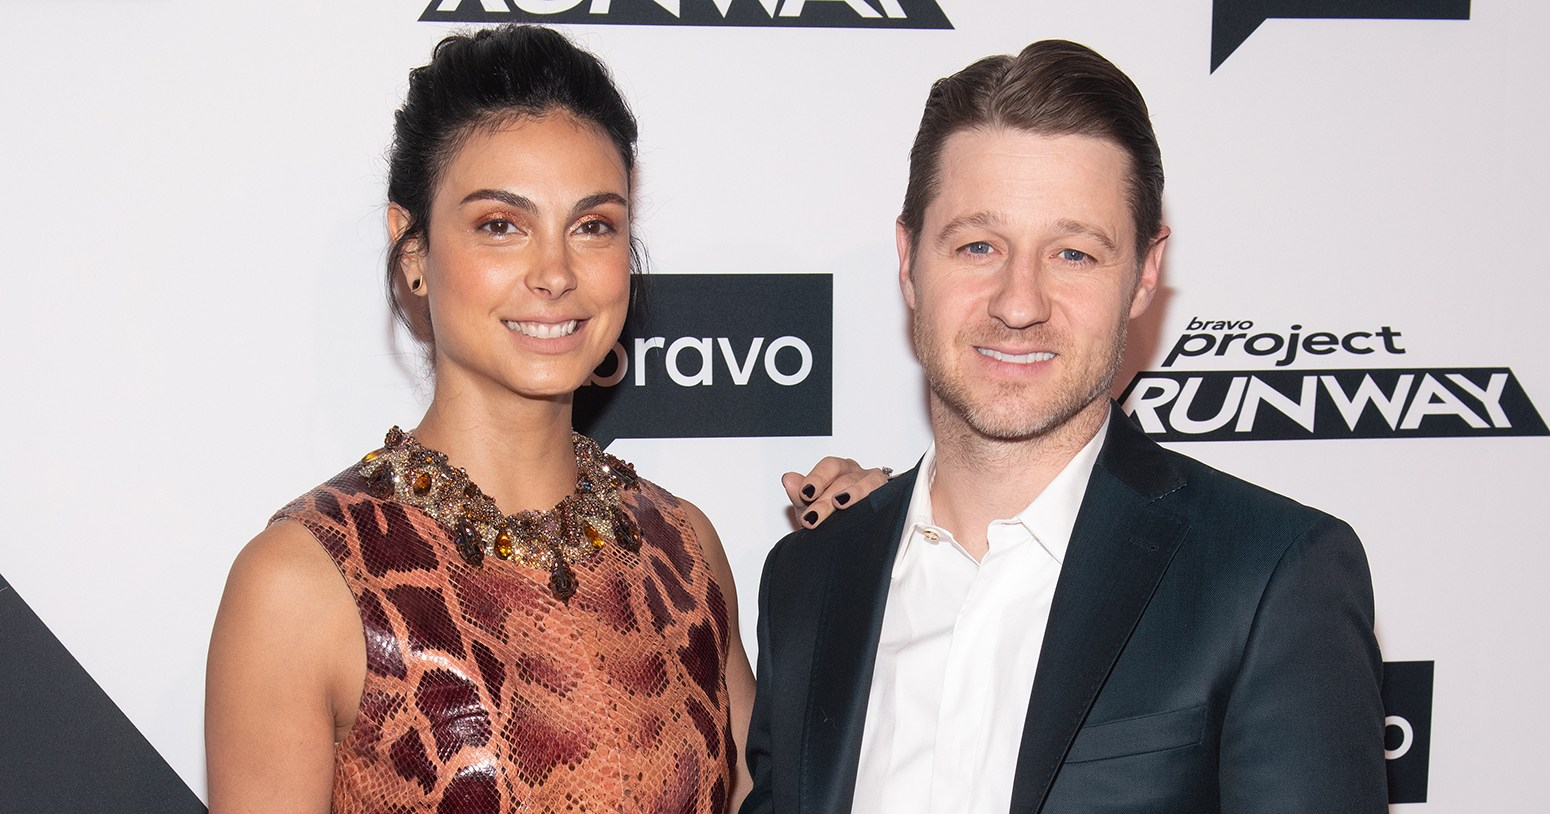 Morena Baccarin on Whether She Wants More Kids With Ben McKenzie